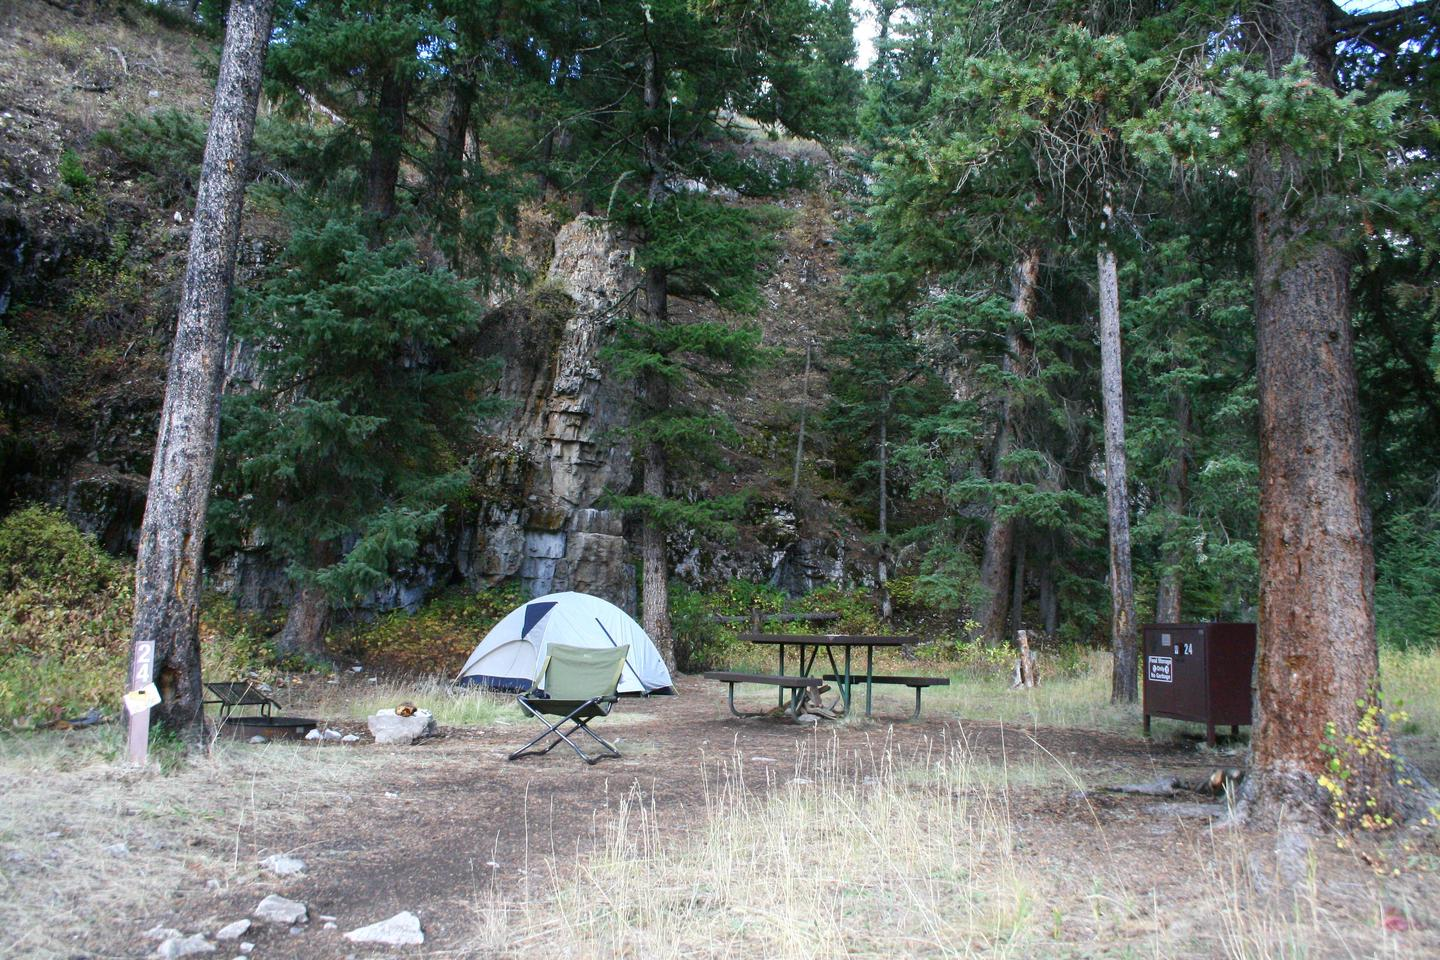 Pebble Creek Campground Site #24.Pebble Creek Campground Site #24 - walk-in site